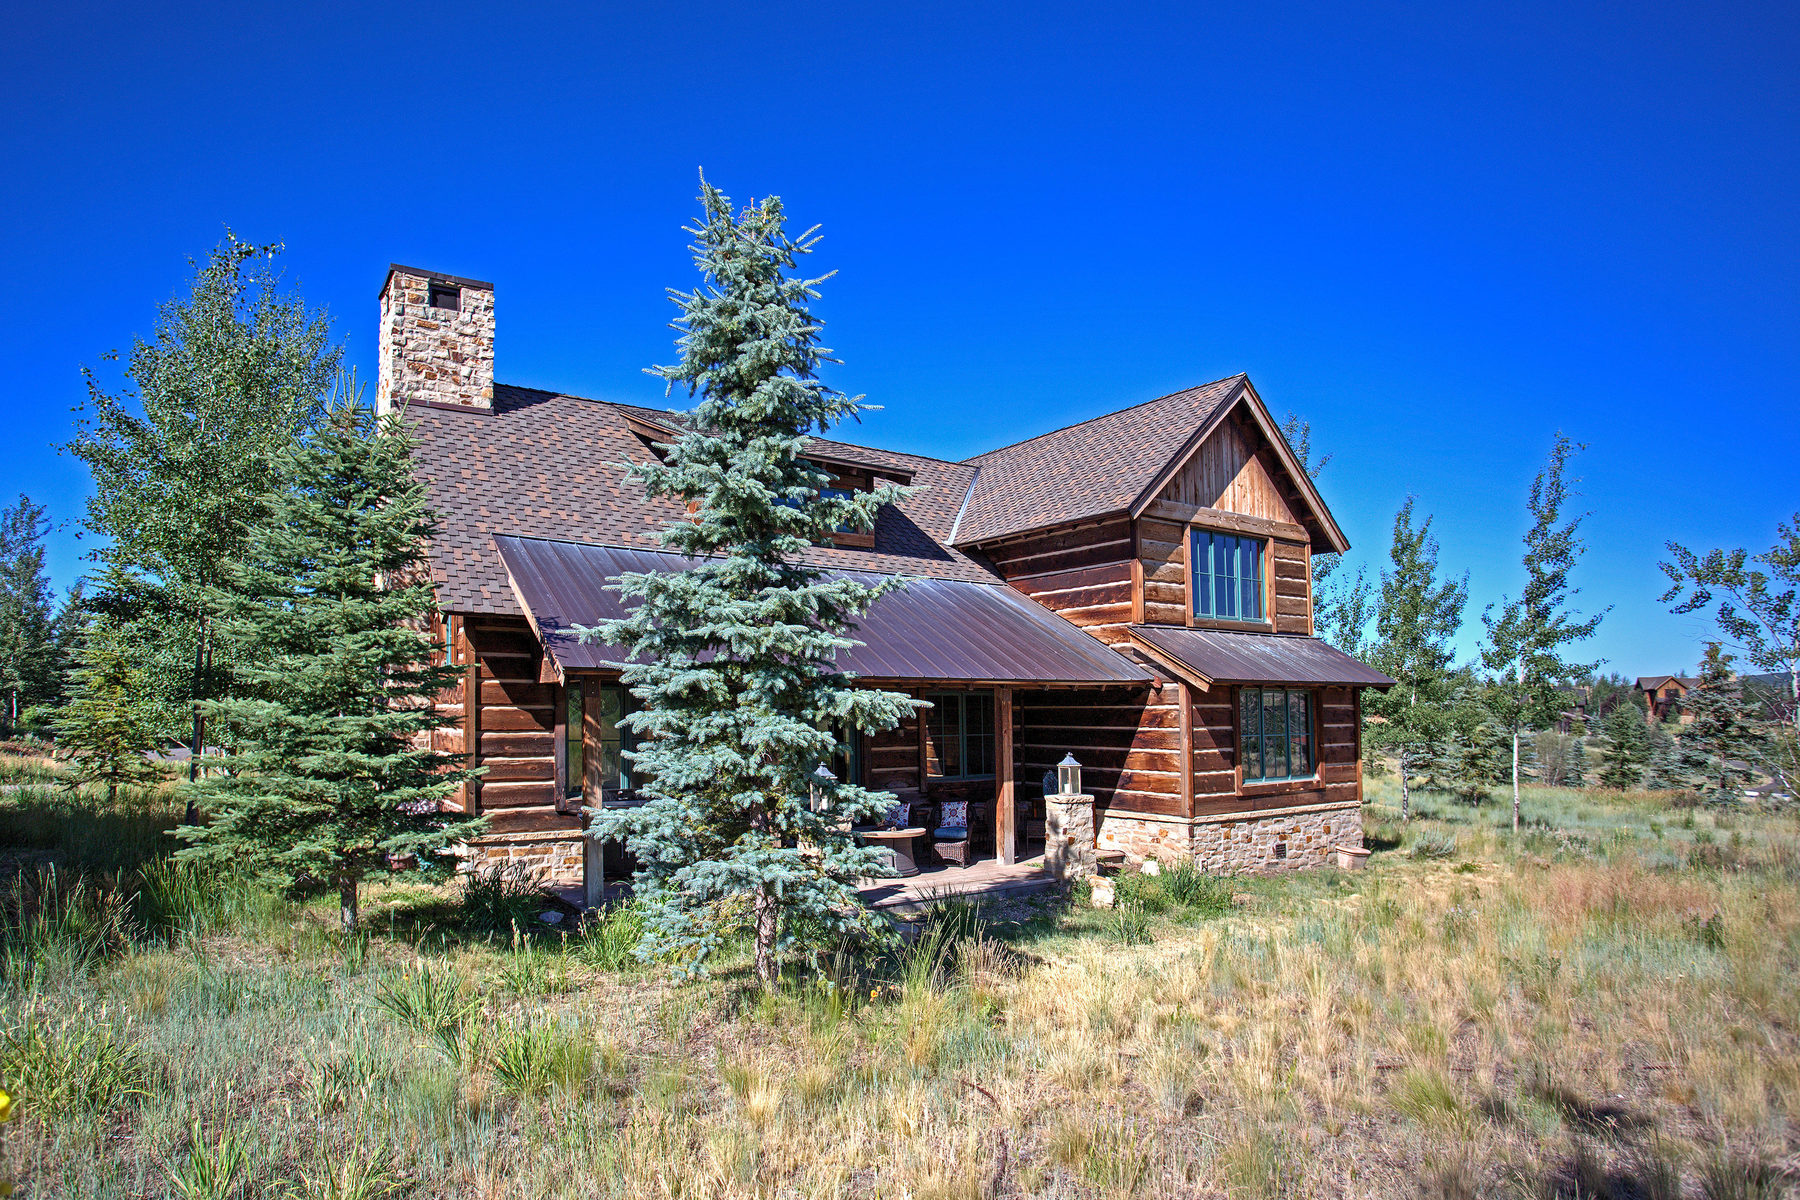 Casa Unifamiliar por un Venta en Exclusive Setting in the Trapper Cabin Neighborhood 7933 Chuck Wagon Ct Park City, Utah, 84098 Estados Unidos